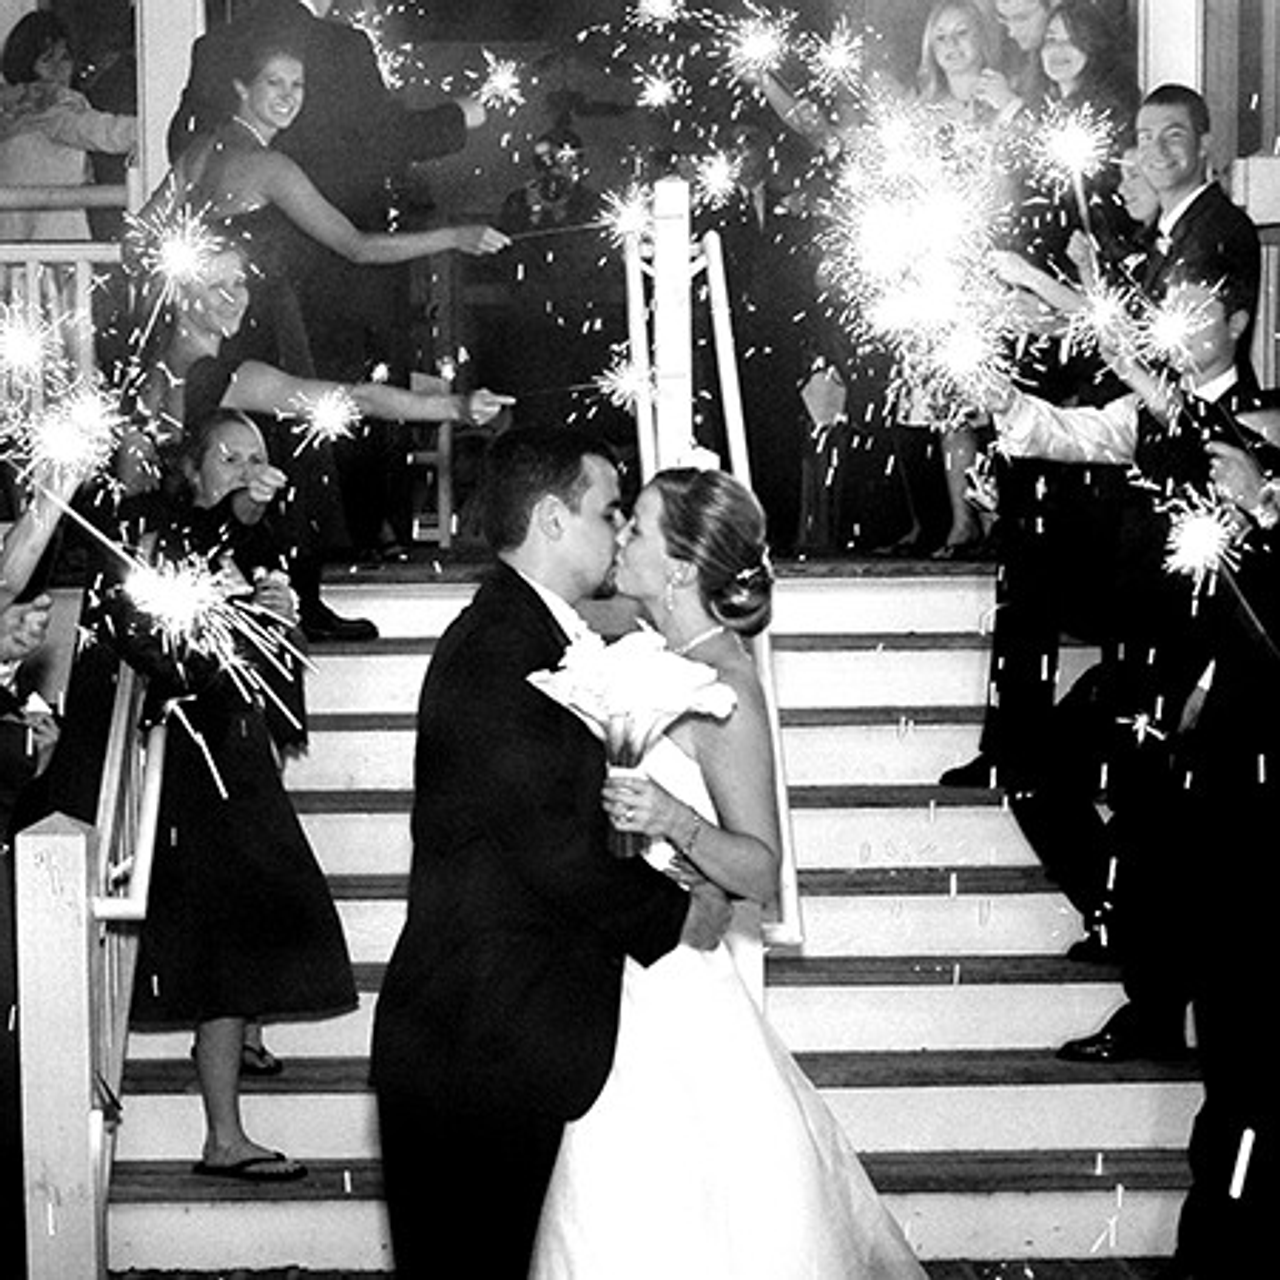 36 inch sparklers, wedding, champagne, poppers, party, celebration, new, years, event, custom champagne bottle sparklers, cake sparklers, nite sparx, big birthday candles, champagne bottle sparklers, bottle service, fireworks, club, birthday, party, celebration, lounge, bar, wedding sparklers, wedding firework displays, wedding fireworks display, celebration candle, wedding firework display, indoor sparklers, fireworks wedding, sparkler bombs, wedding fireworks, party cannons, confetti cannon rental, cake sparklers, fireworks stores in dallas, fireworks stores las vegas, firework stores in las vegas, extra large sparklers, vip bar supplies, buy champagne bottles, bridal supplies, wedding fireworks, wedding decorations, sparklers in bulk, sparklers